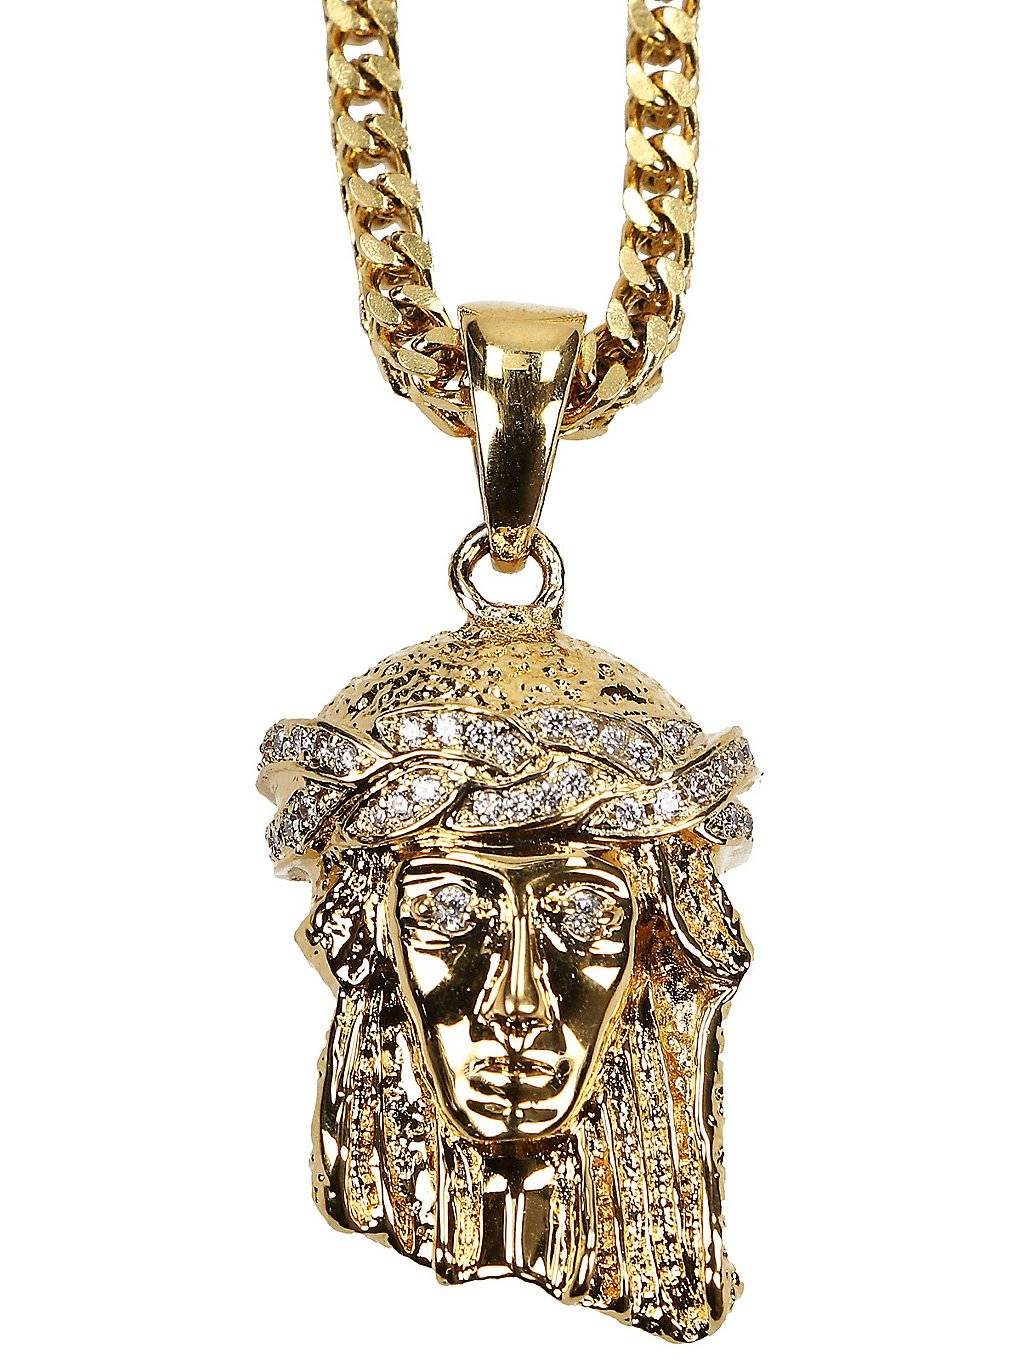 The Gold Gods Franco Chain Micro Jesus Necklace keltainen